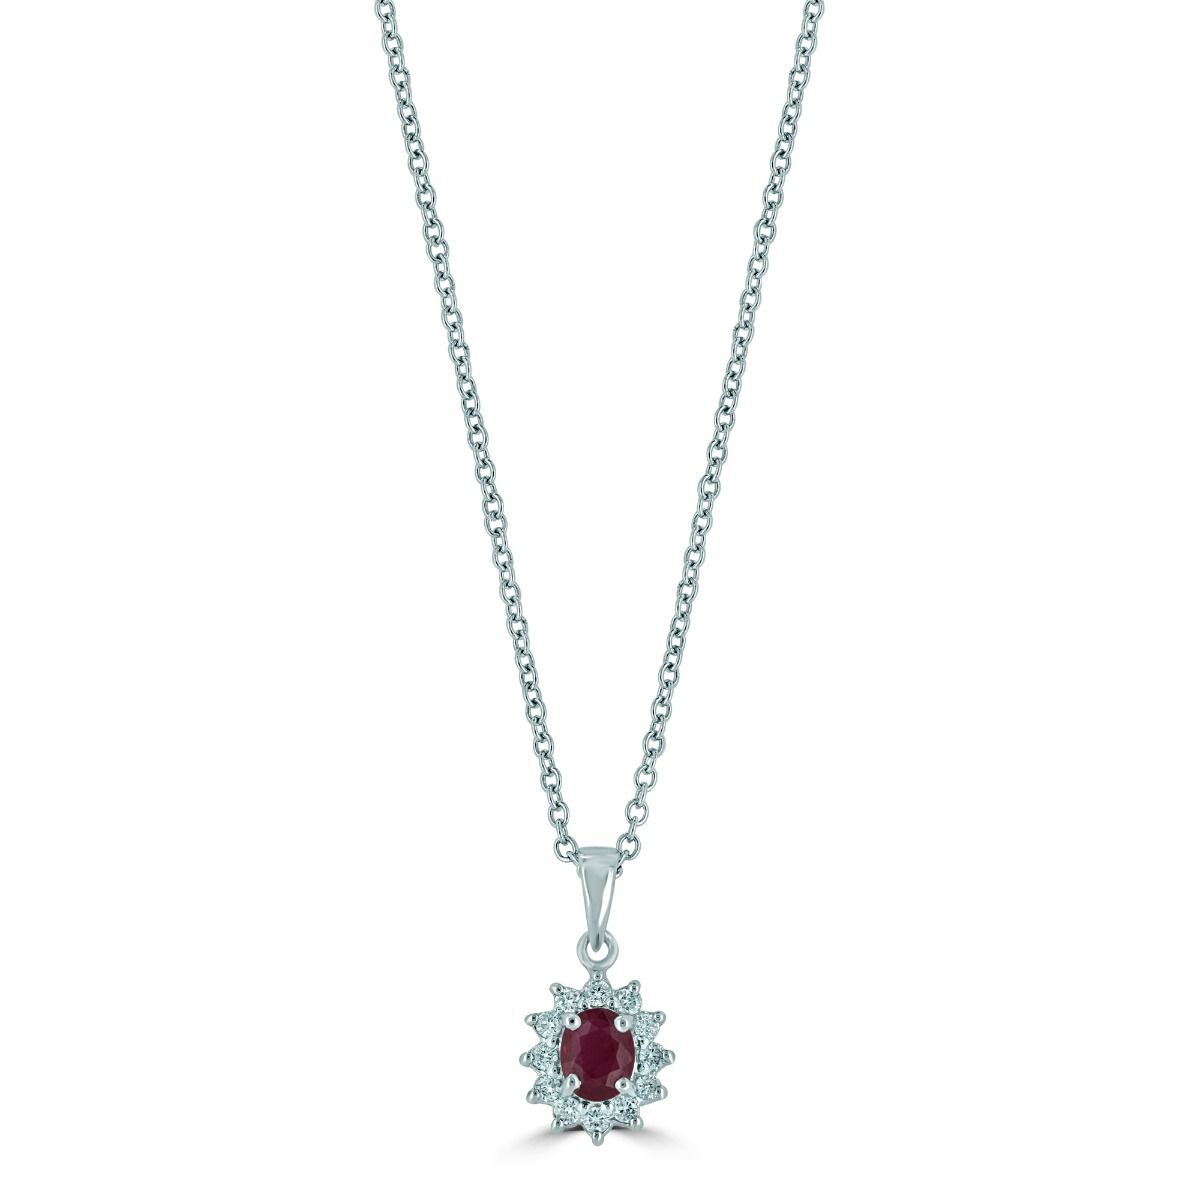 18Ct White Gold Ruby And Diamond Cluster Necklace (Chain Not Included) Throughout Most Recently Released Ruby And Diamond Cluster Necklaces (View 8 of 25)